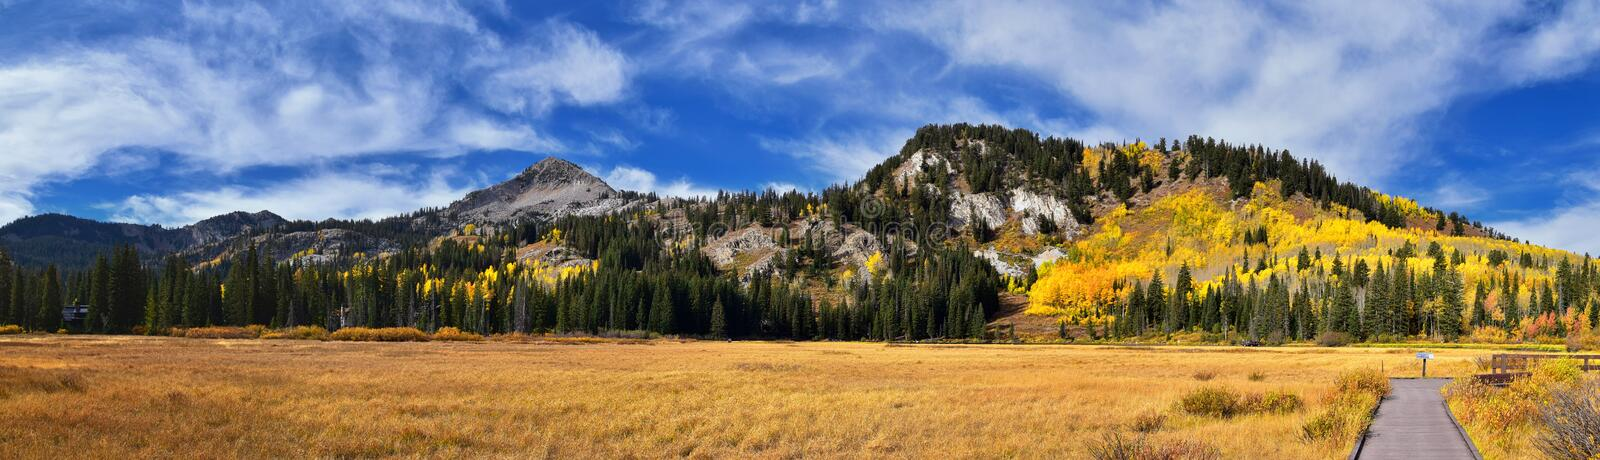 Silver Lake by Solitude and Brighton Ski resort in Big Cottonwood Canyon. Panoramic Views from the hiking and boardwalk trails of. The surrounding mountains stock images